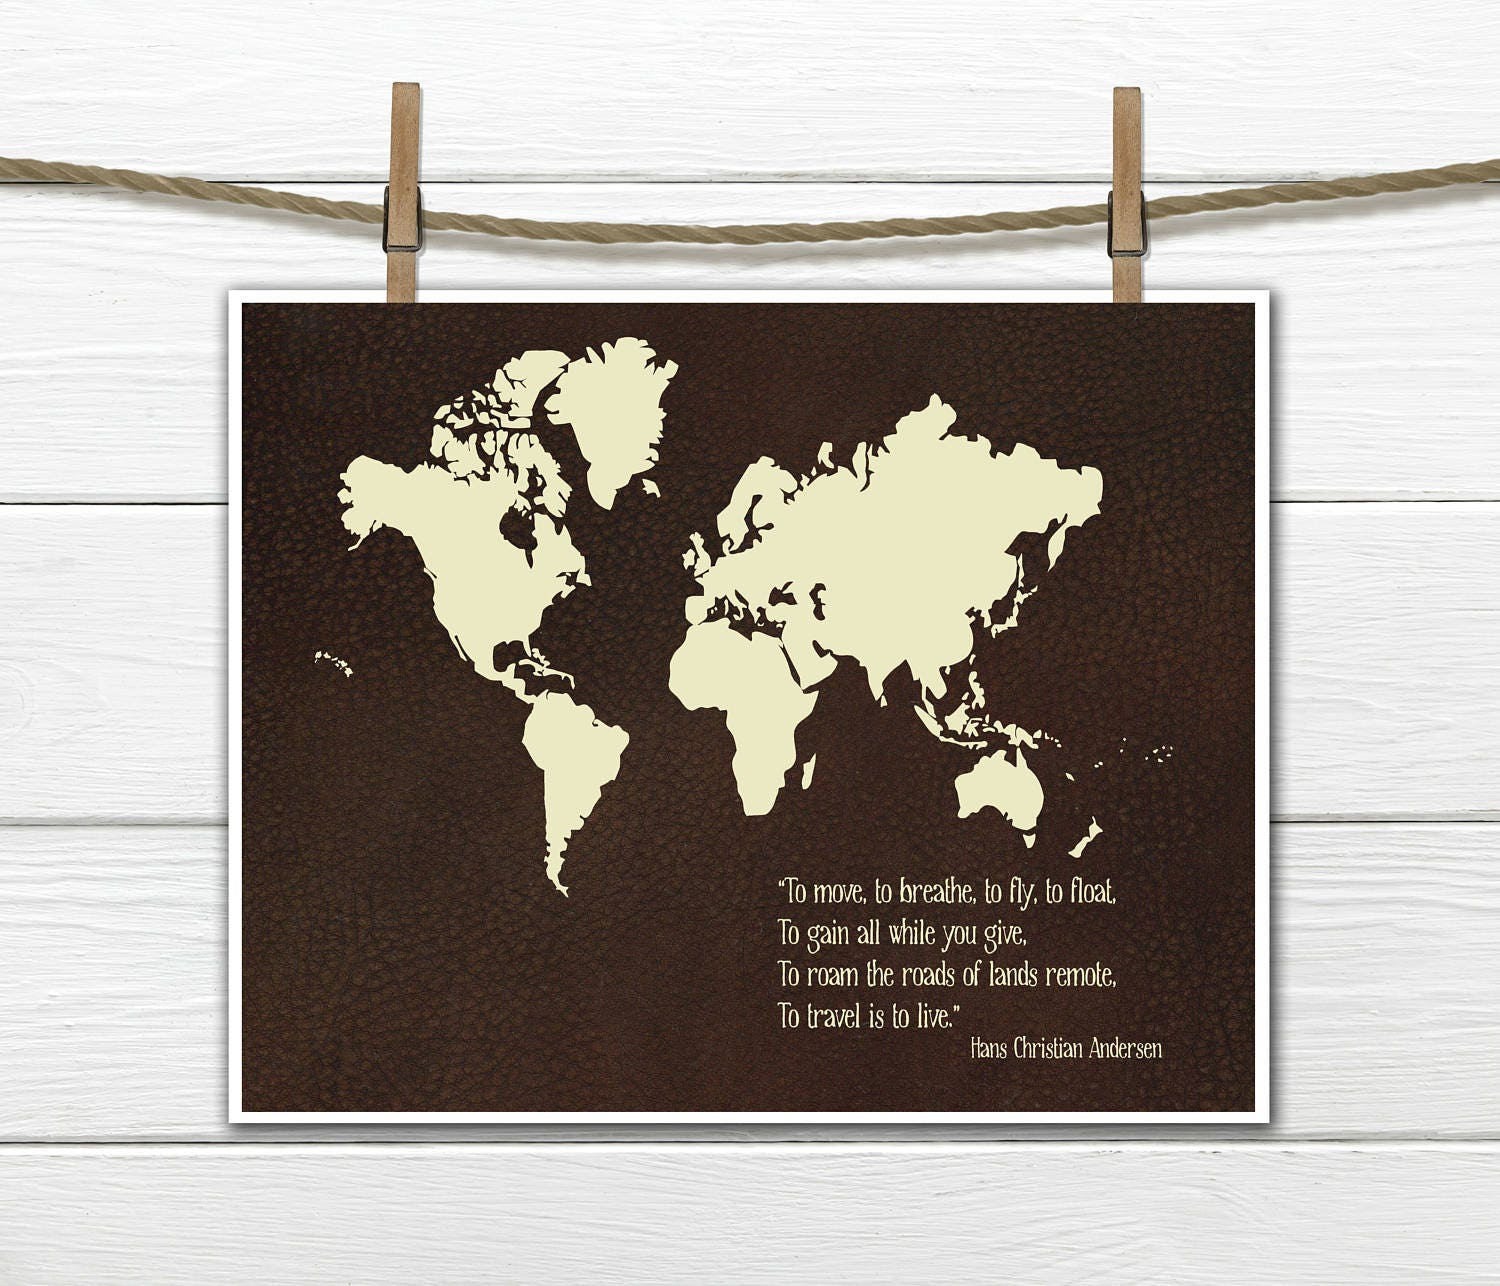 World map print faux leather background to travel is to live hans world map print faux leather background to travel is to live hans christian andersen quote gumiabroncs Image collections